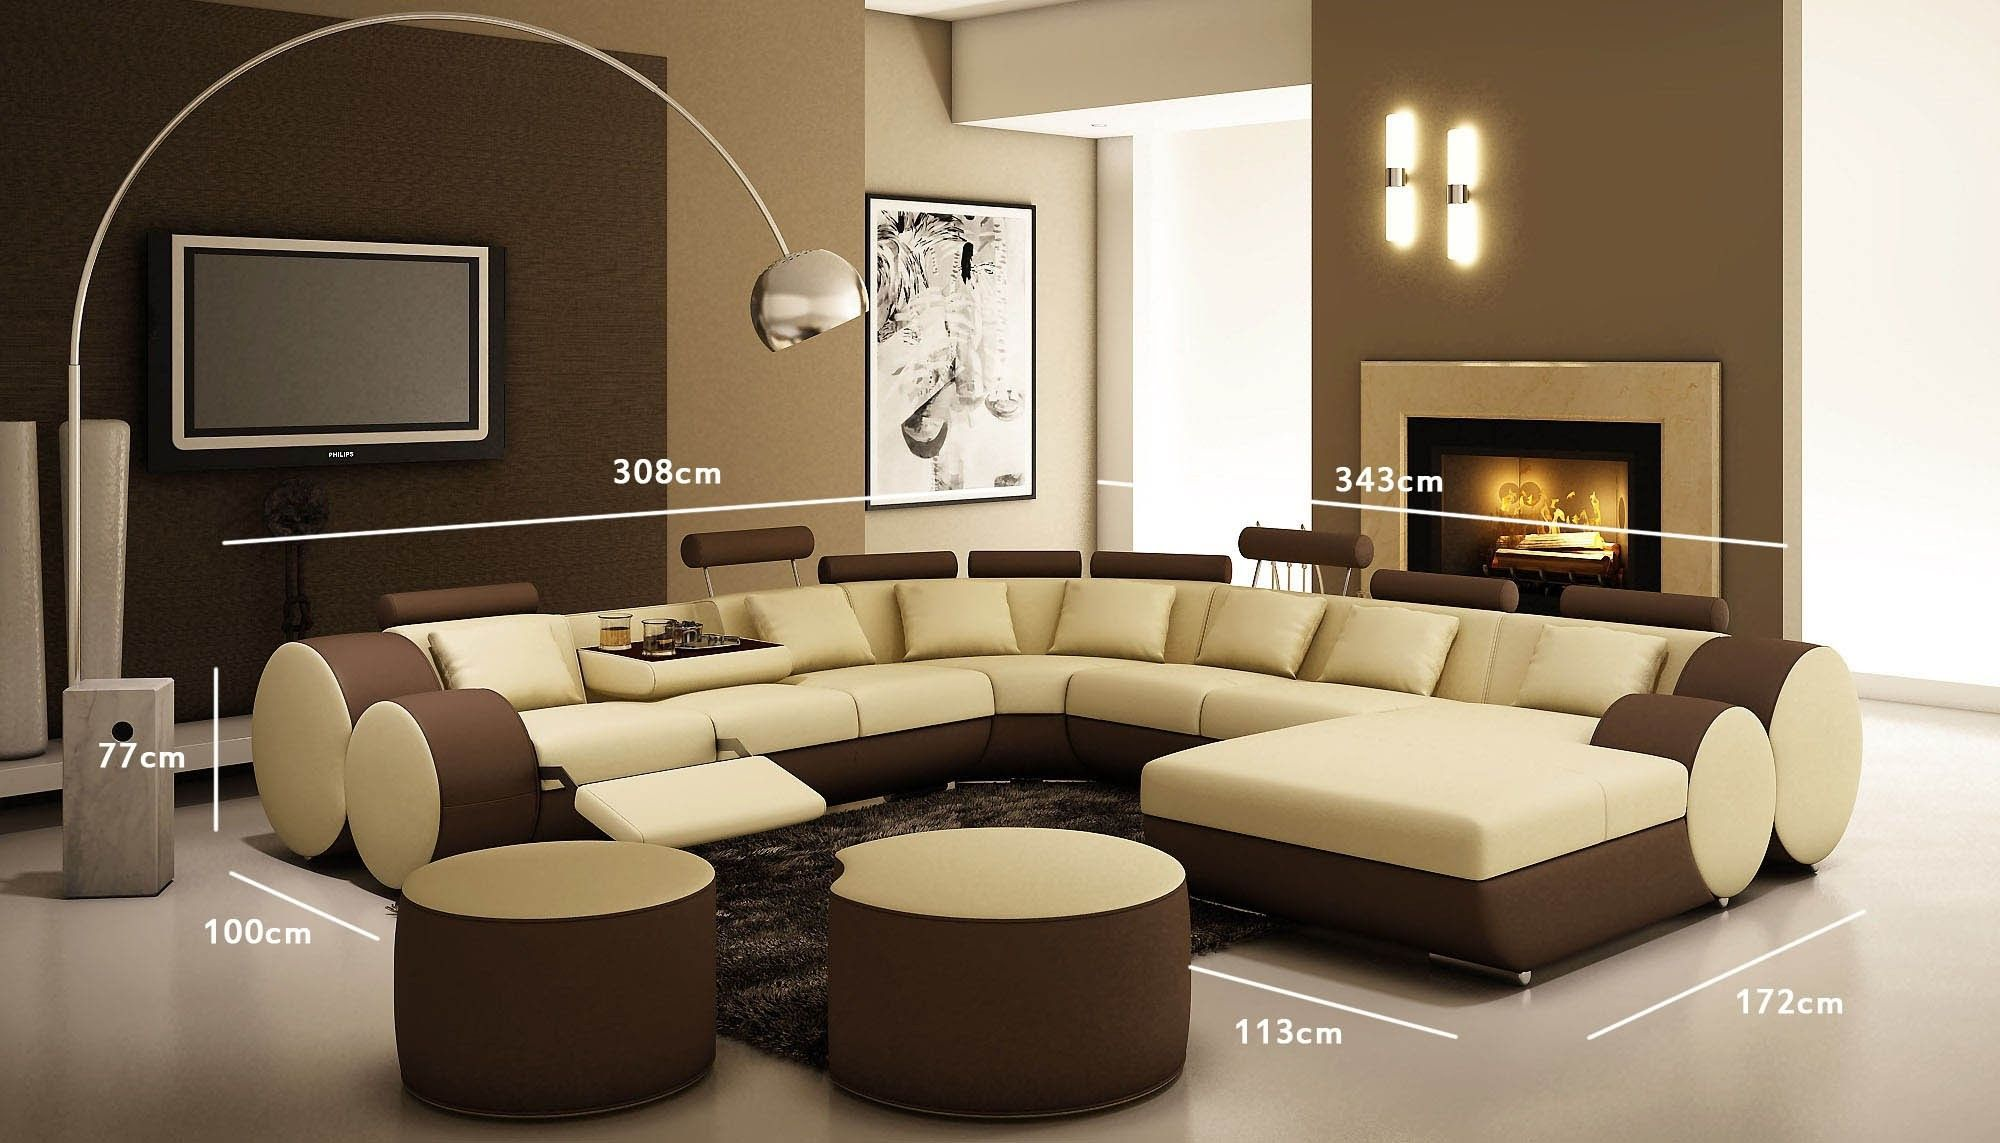 deco salon marron beige stockphotos decoration et 73 Layout In Decoration And Family Room id=13217